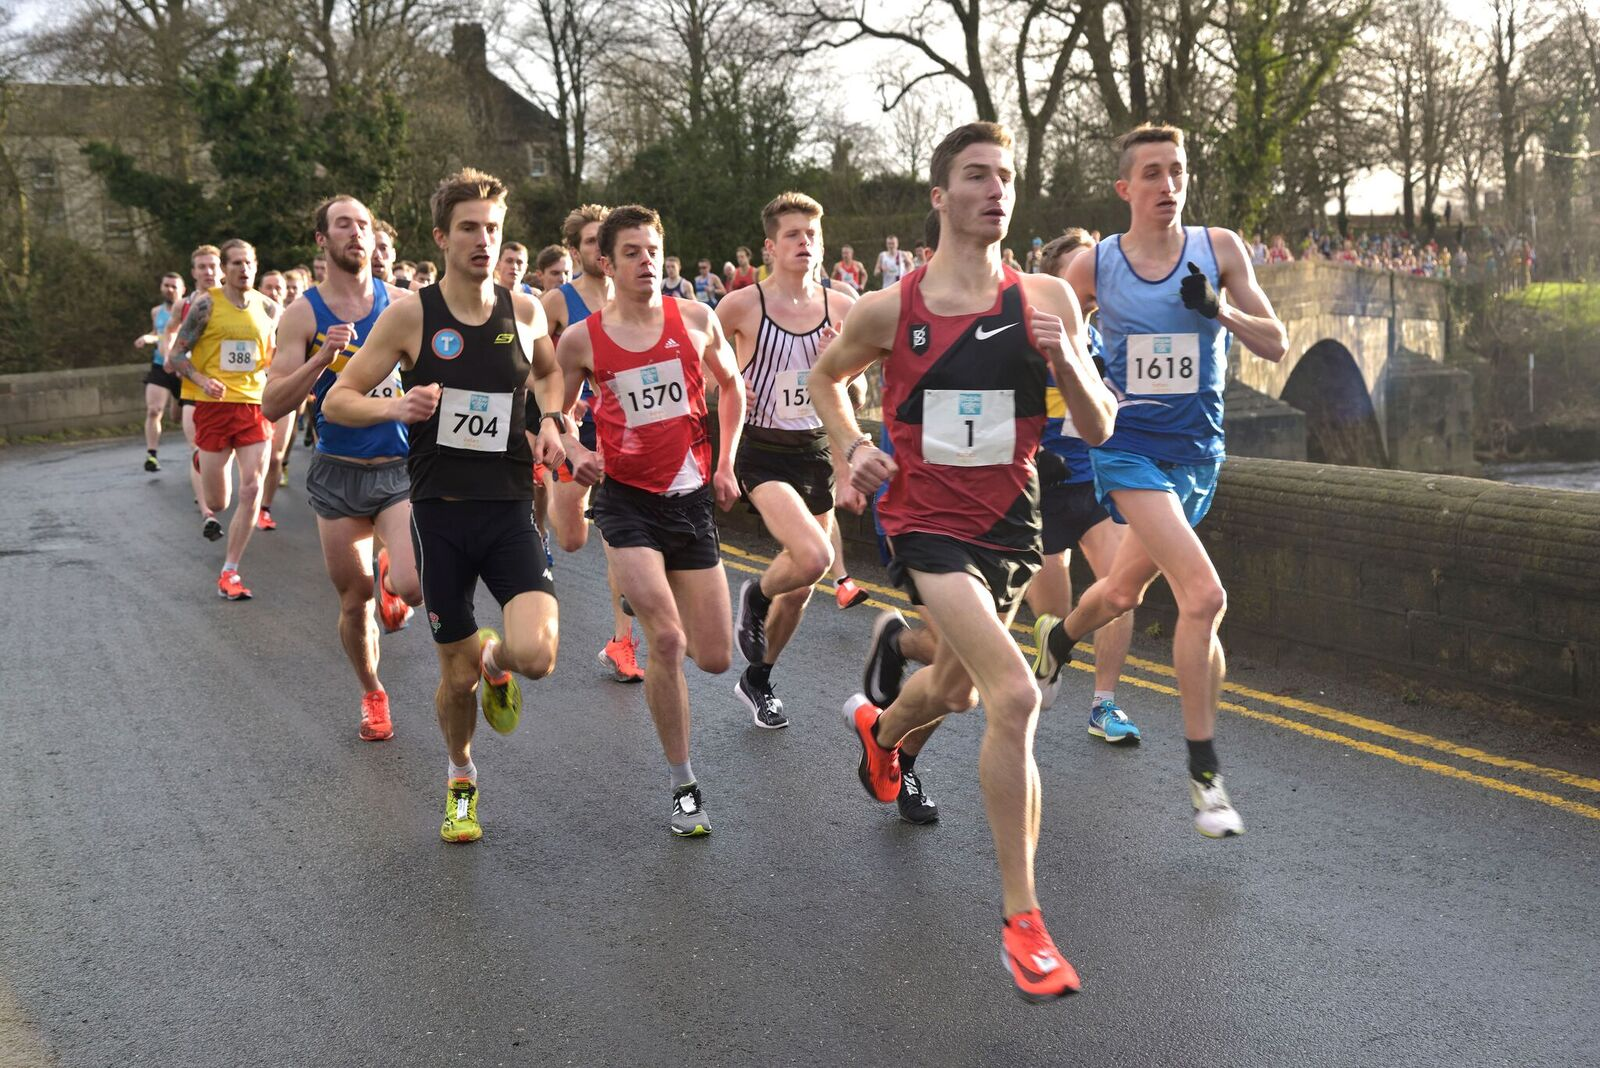 Wins for Marc Scott & Laura Weightman at RV10k – Northern Team Medals and Open Race wins for Blackburn Harriers  + Vet wins for Harriers Mat Nuttall and Joanne Nelson